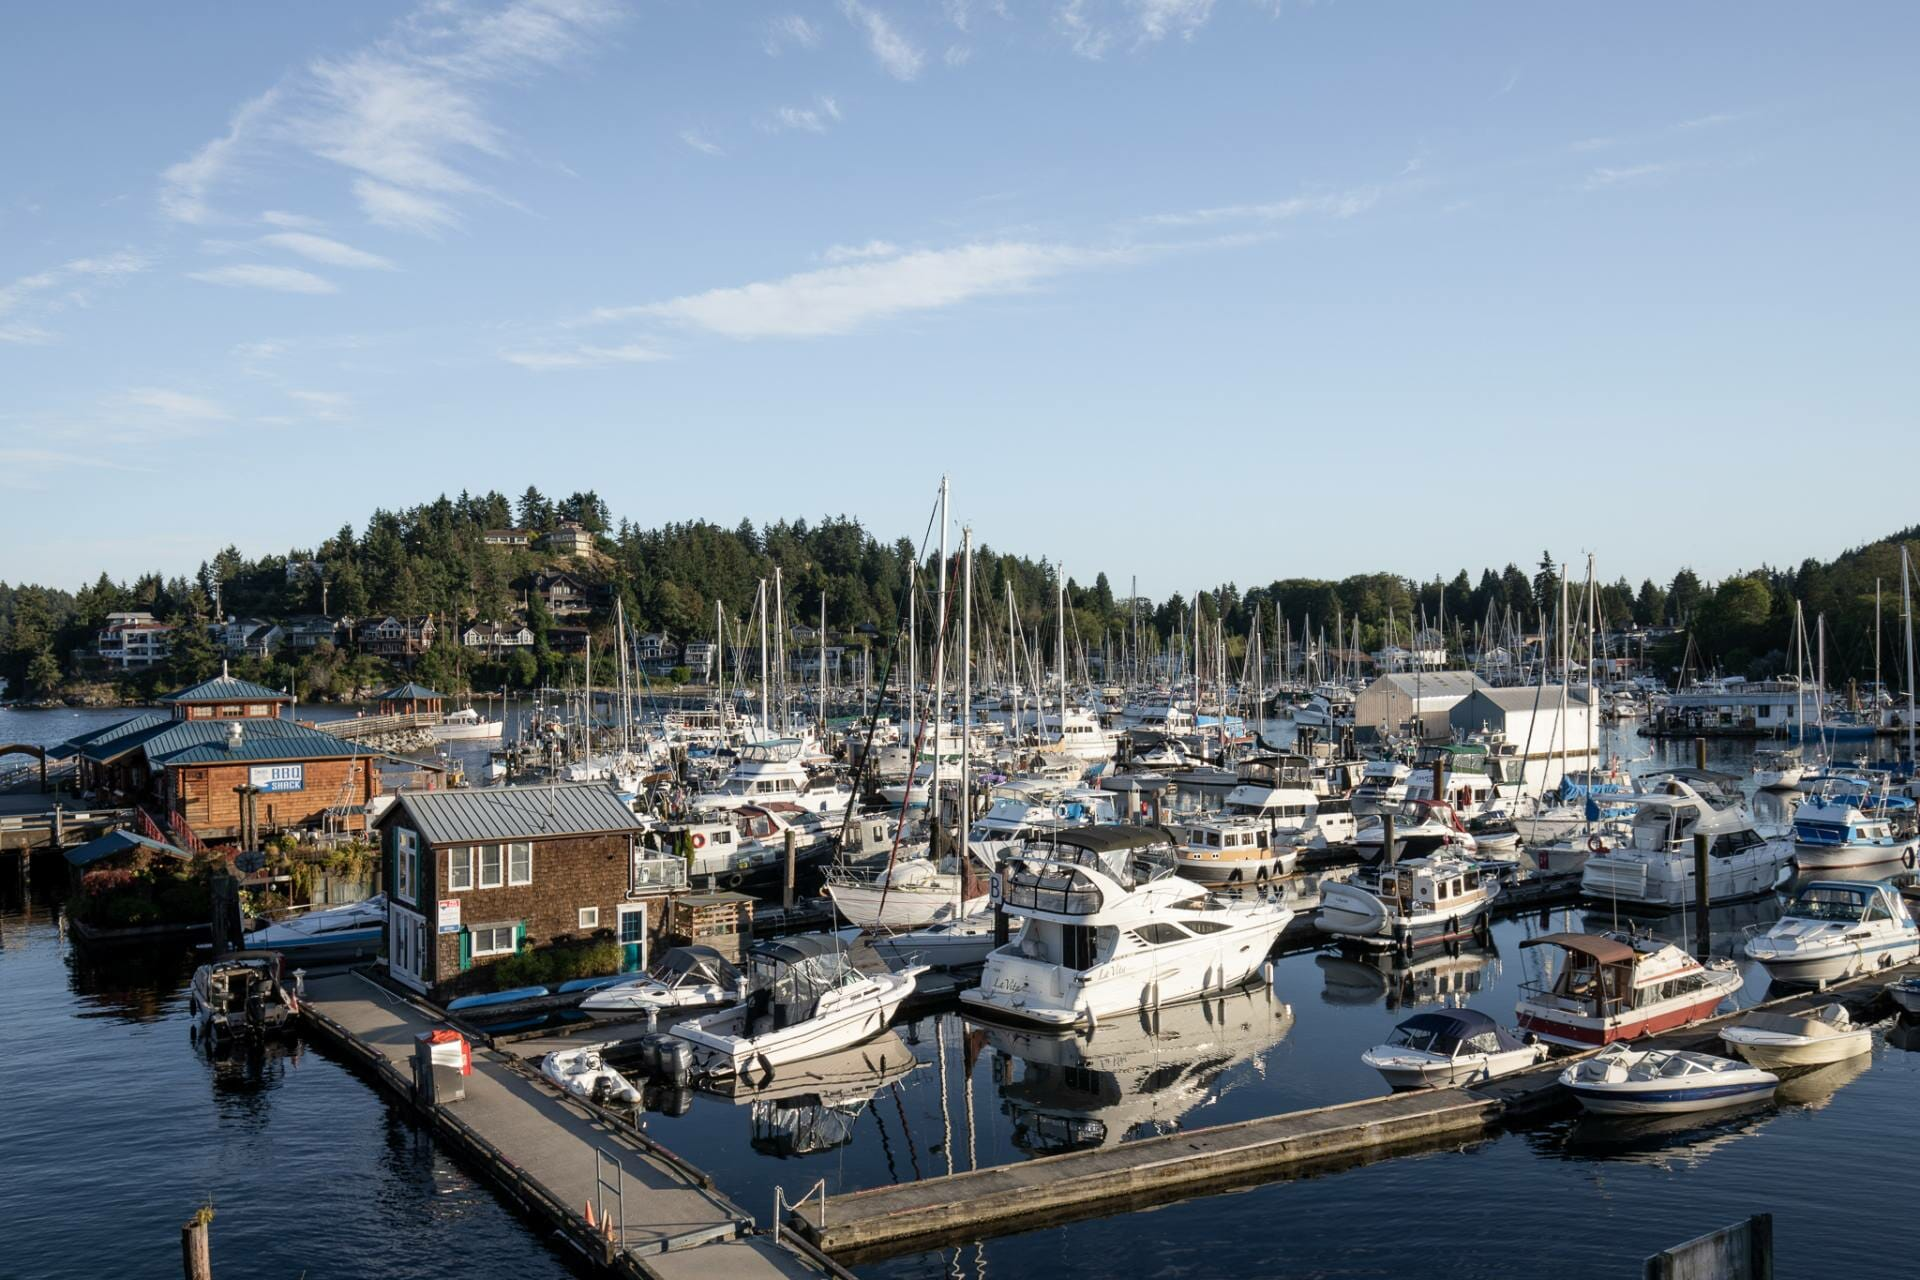 Things to do in Gibsons